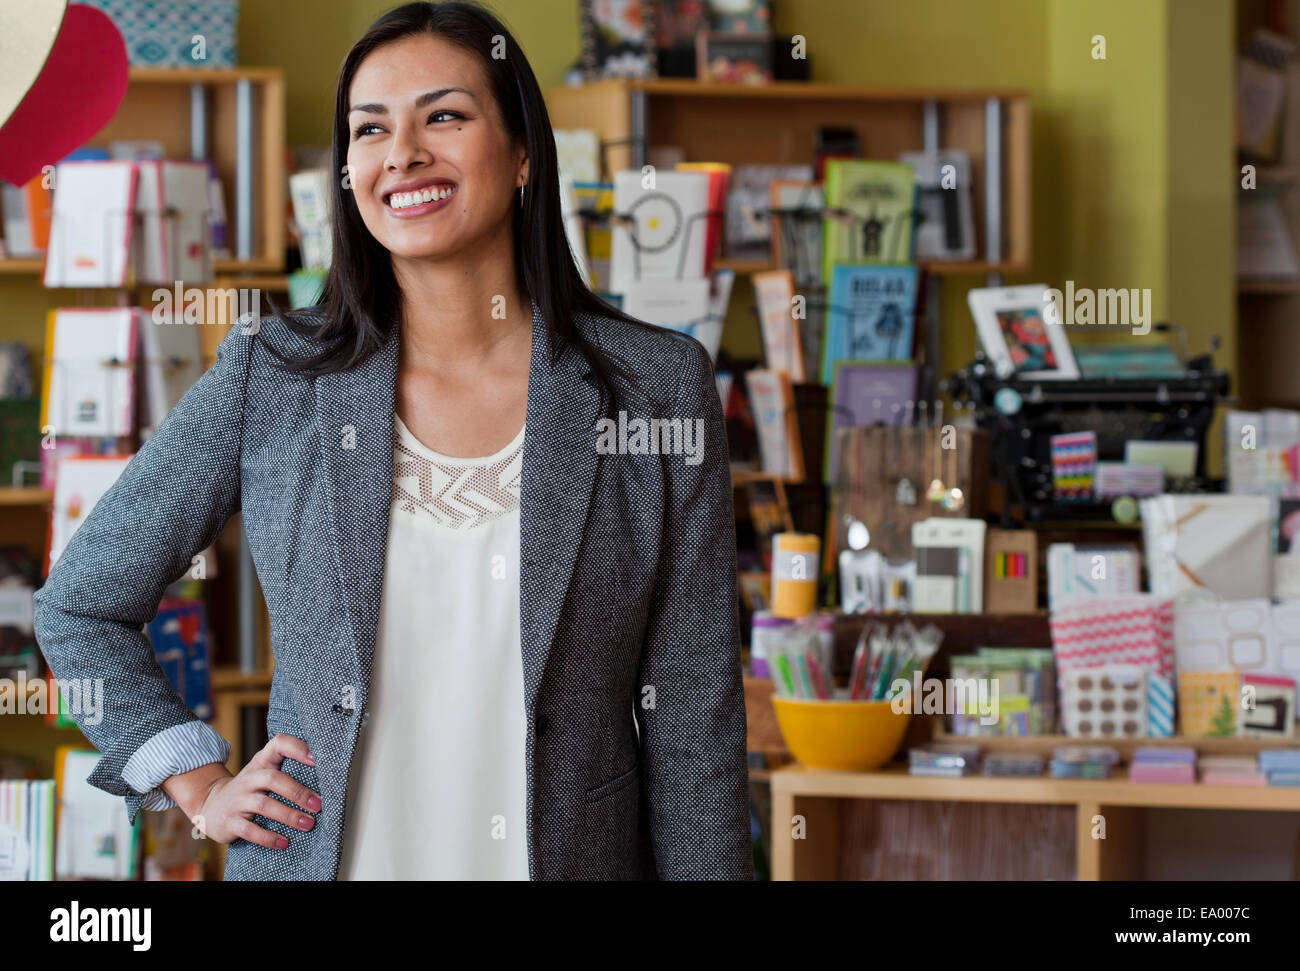 portrait of female s assistant in stationery shop stock photo portrait of female s assistant in stationery shop